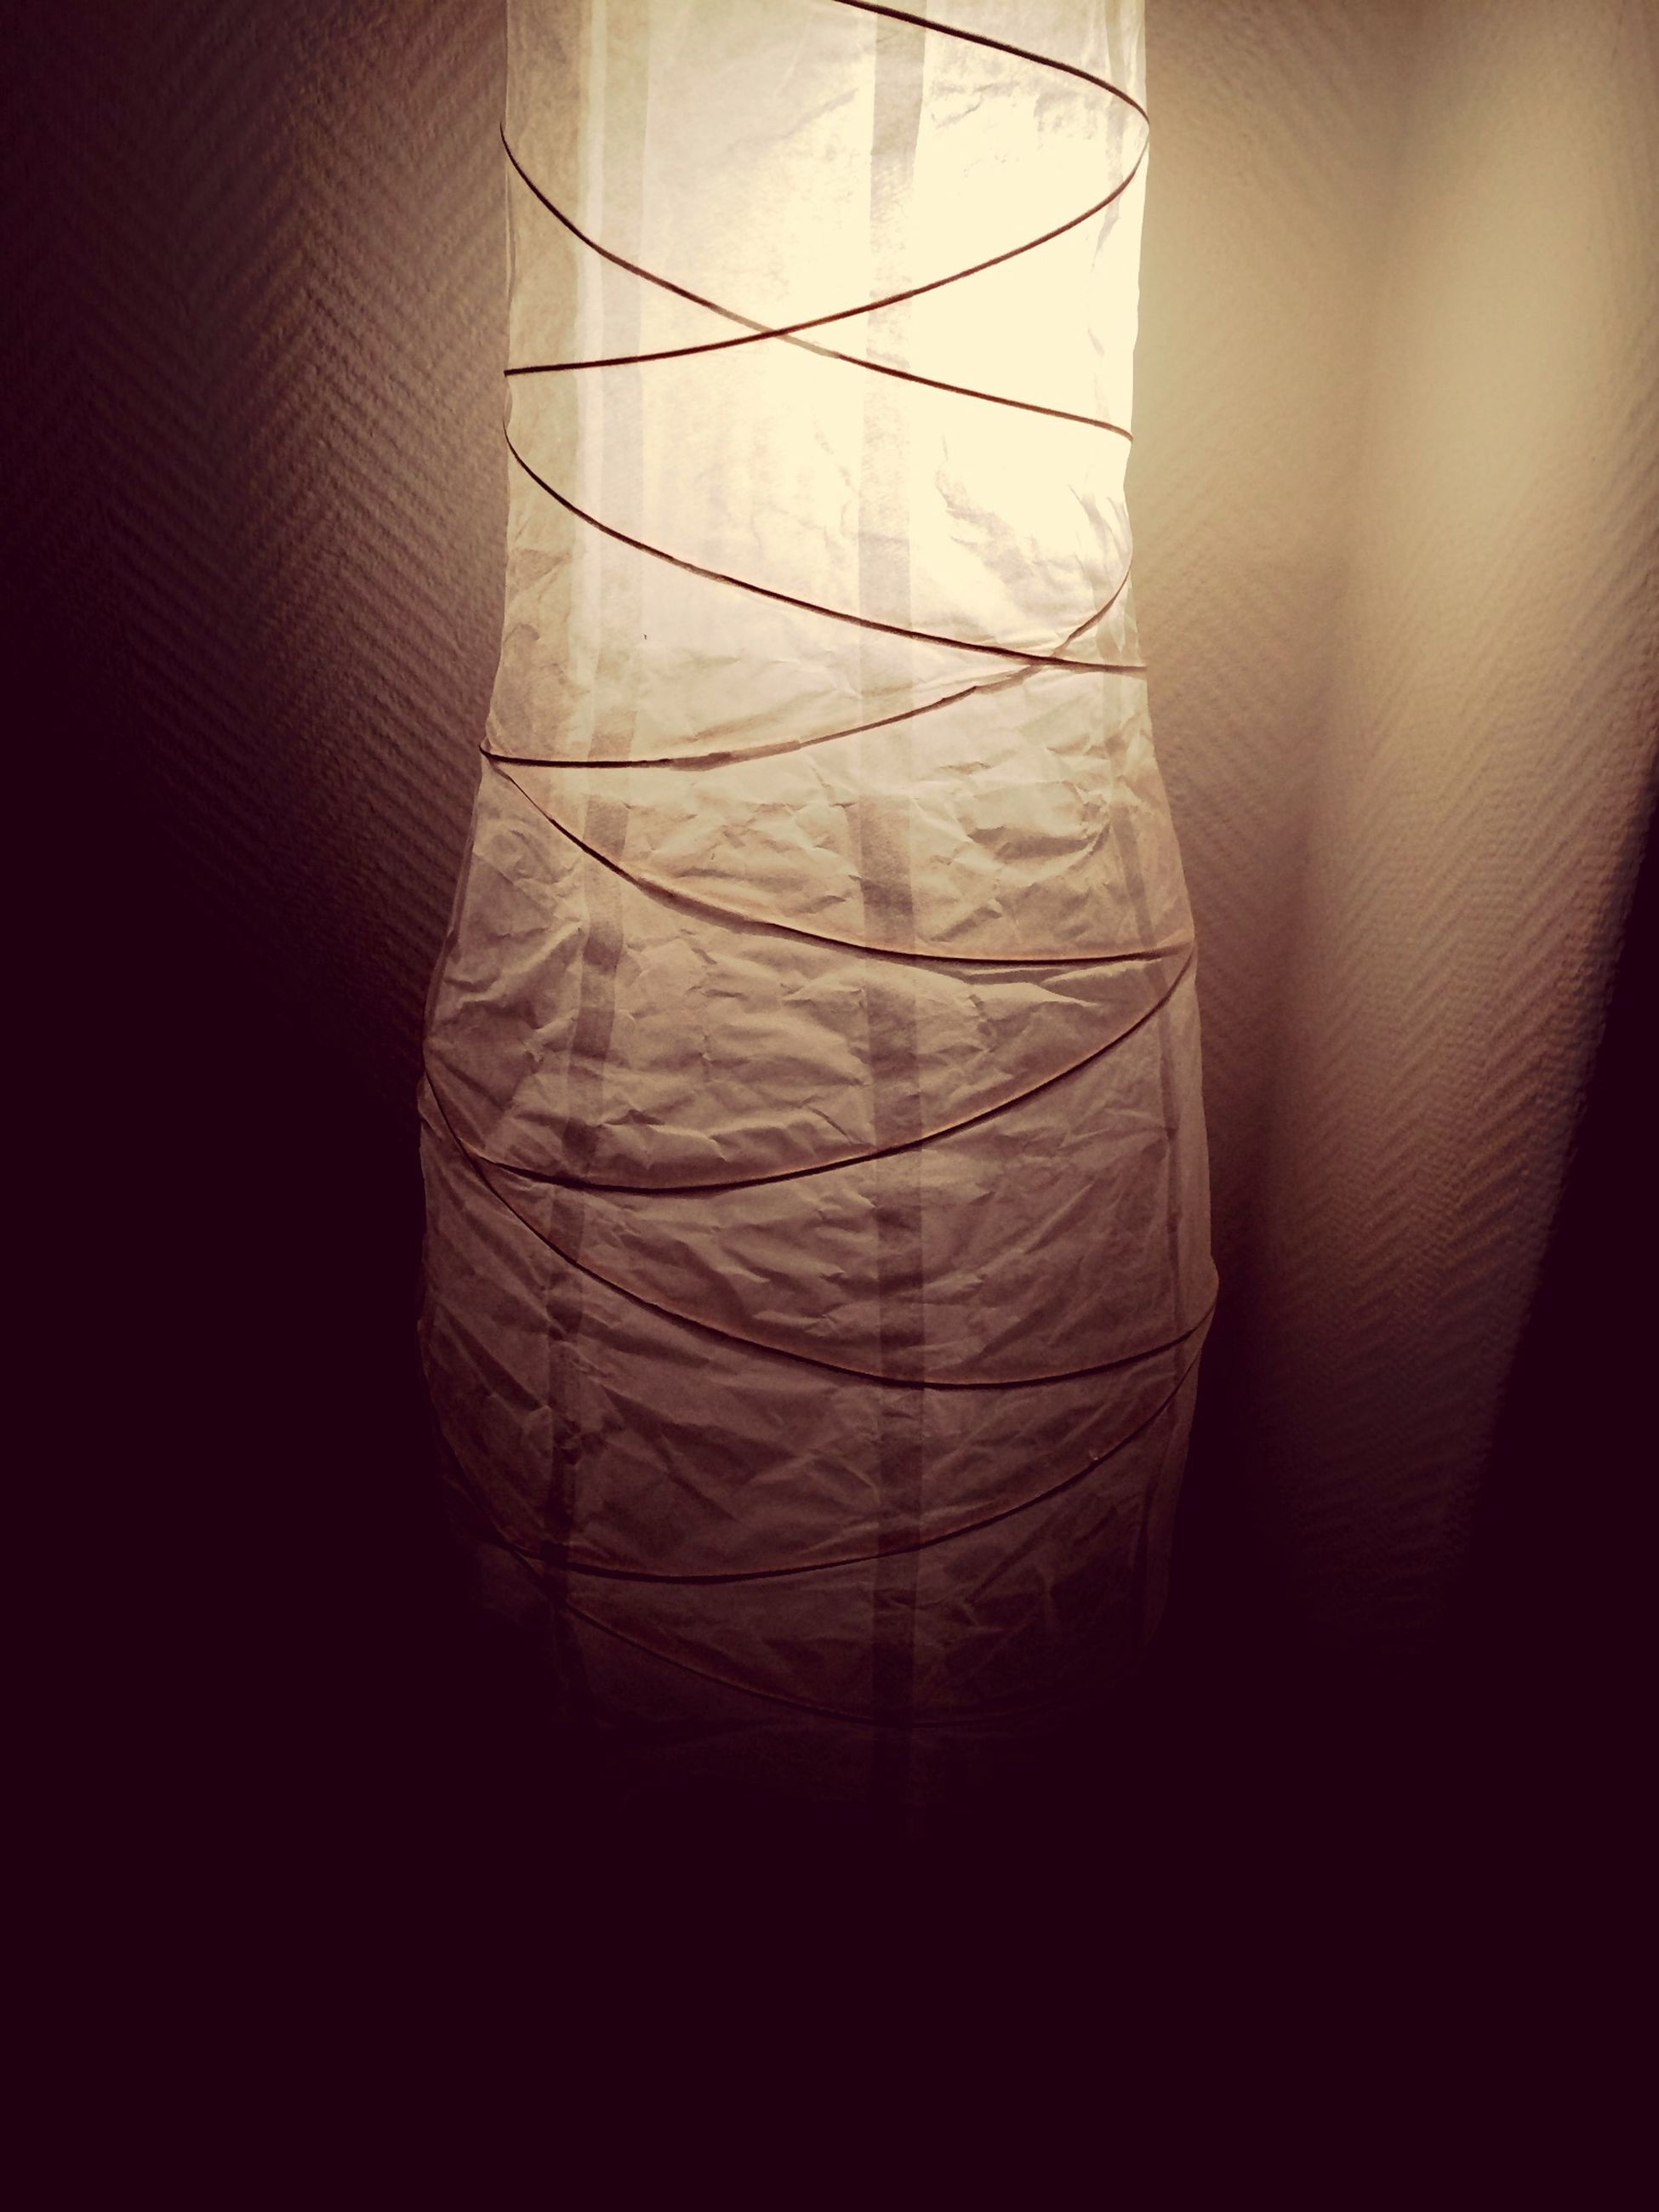 indoors, textile, close-up, fabric, bed, home interior, pattern, still life, bedroom, design, paper, no people, sheet, absence, single object, studio shot, pillow, textured, curtain, high angle view